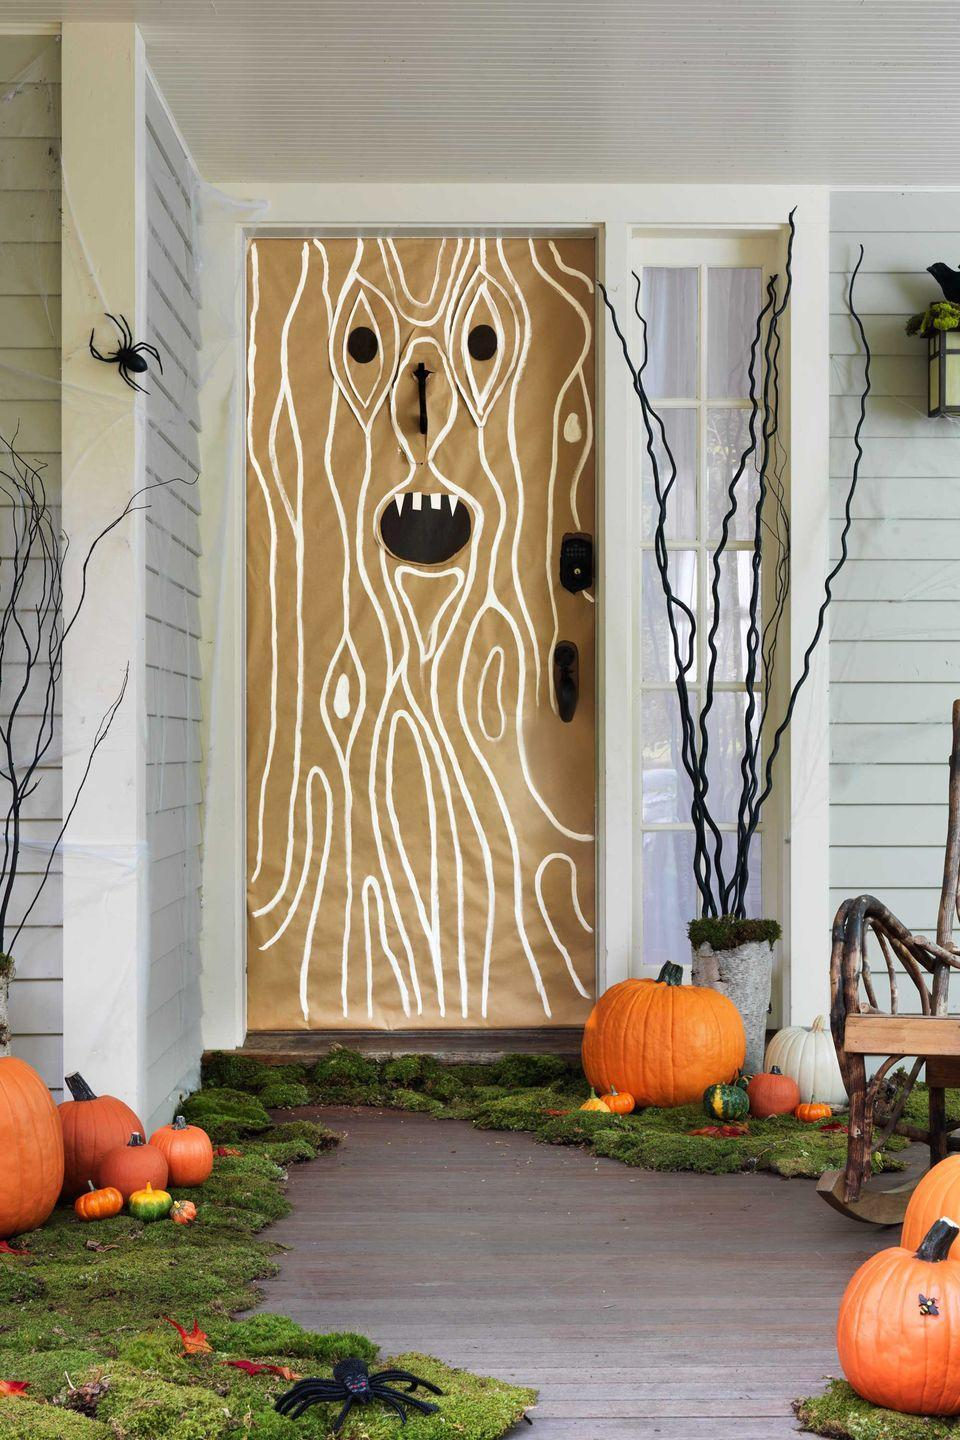 """<p>Trick out your front porch with a layer of moss, spiderwebs and critters — plus a menacing tree trunk on the door. Use painter's tape to affix <span class=""""redactor-unlink"""">brown kraft paper</span> onto your door, making slits for the handle and knocker. Cut eyes and a mouth out of black construction paper; tape or glue them onto the kraft paper. For the wood grain: Take white craft paint and draw curved lines first around the facial features, then vertically on the door. Place <span class=""""redactor-unlink"""">preserved green moss</span> along the edges of your front steps or porch.</p>"""